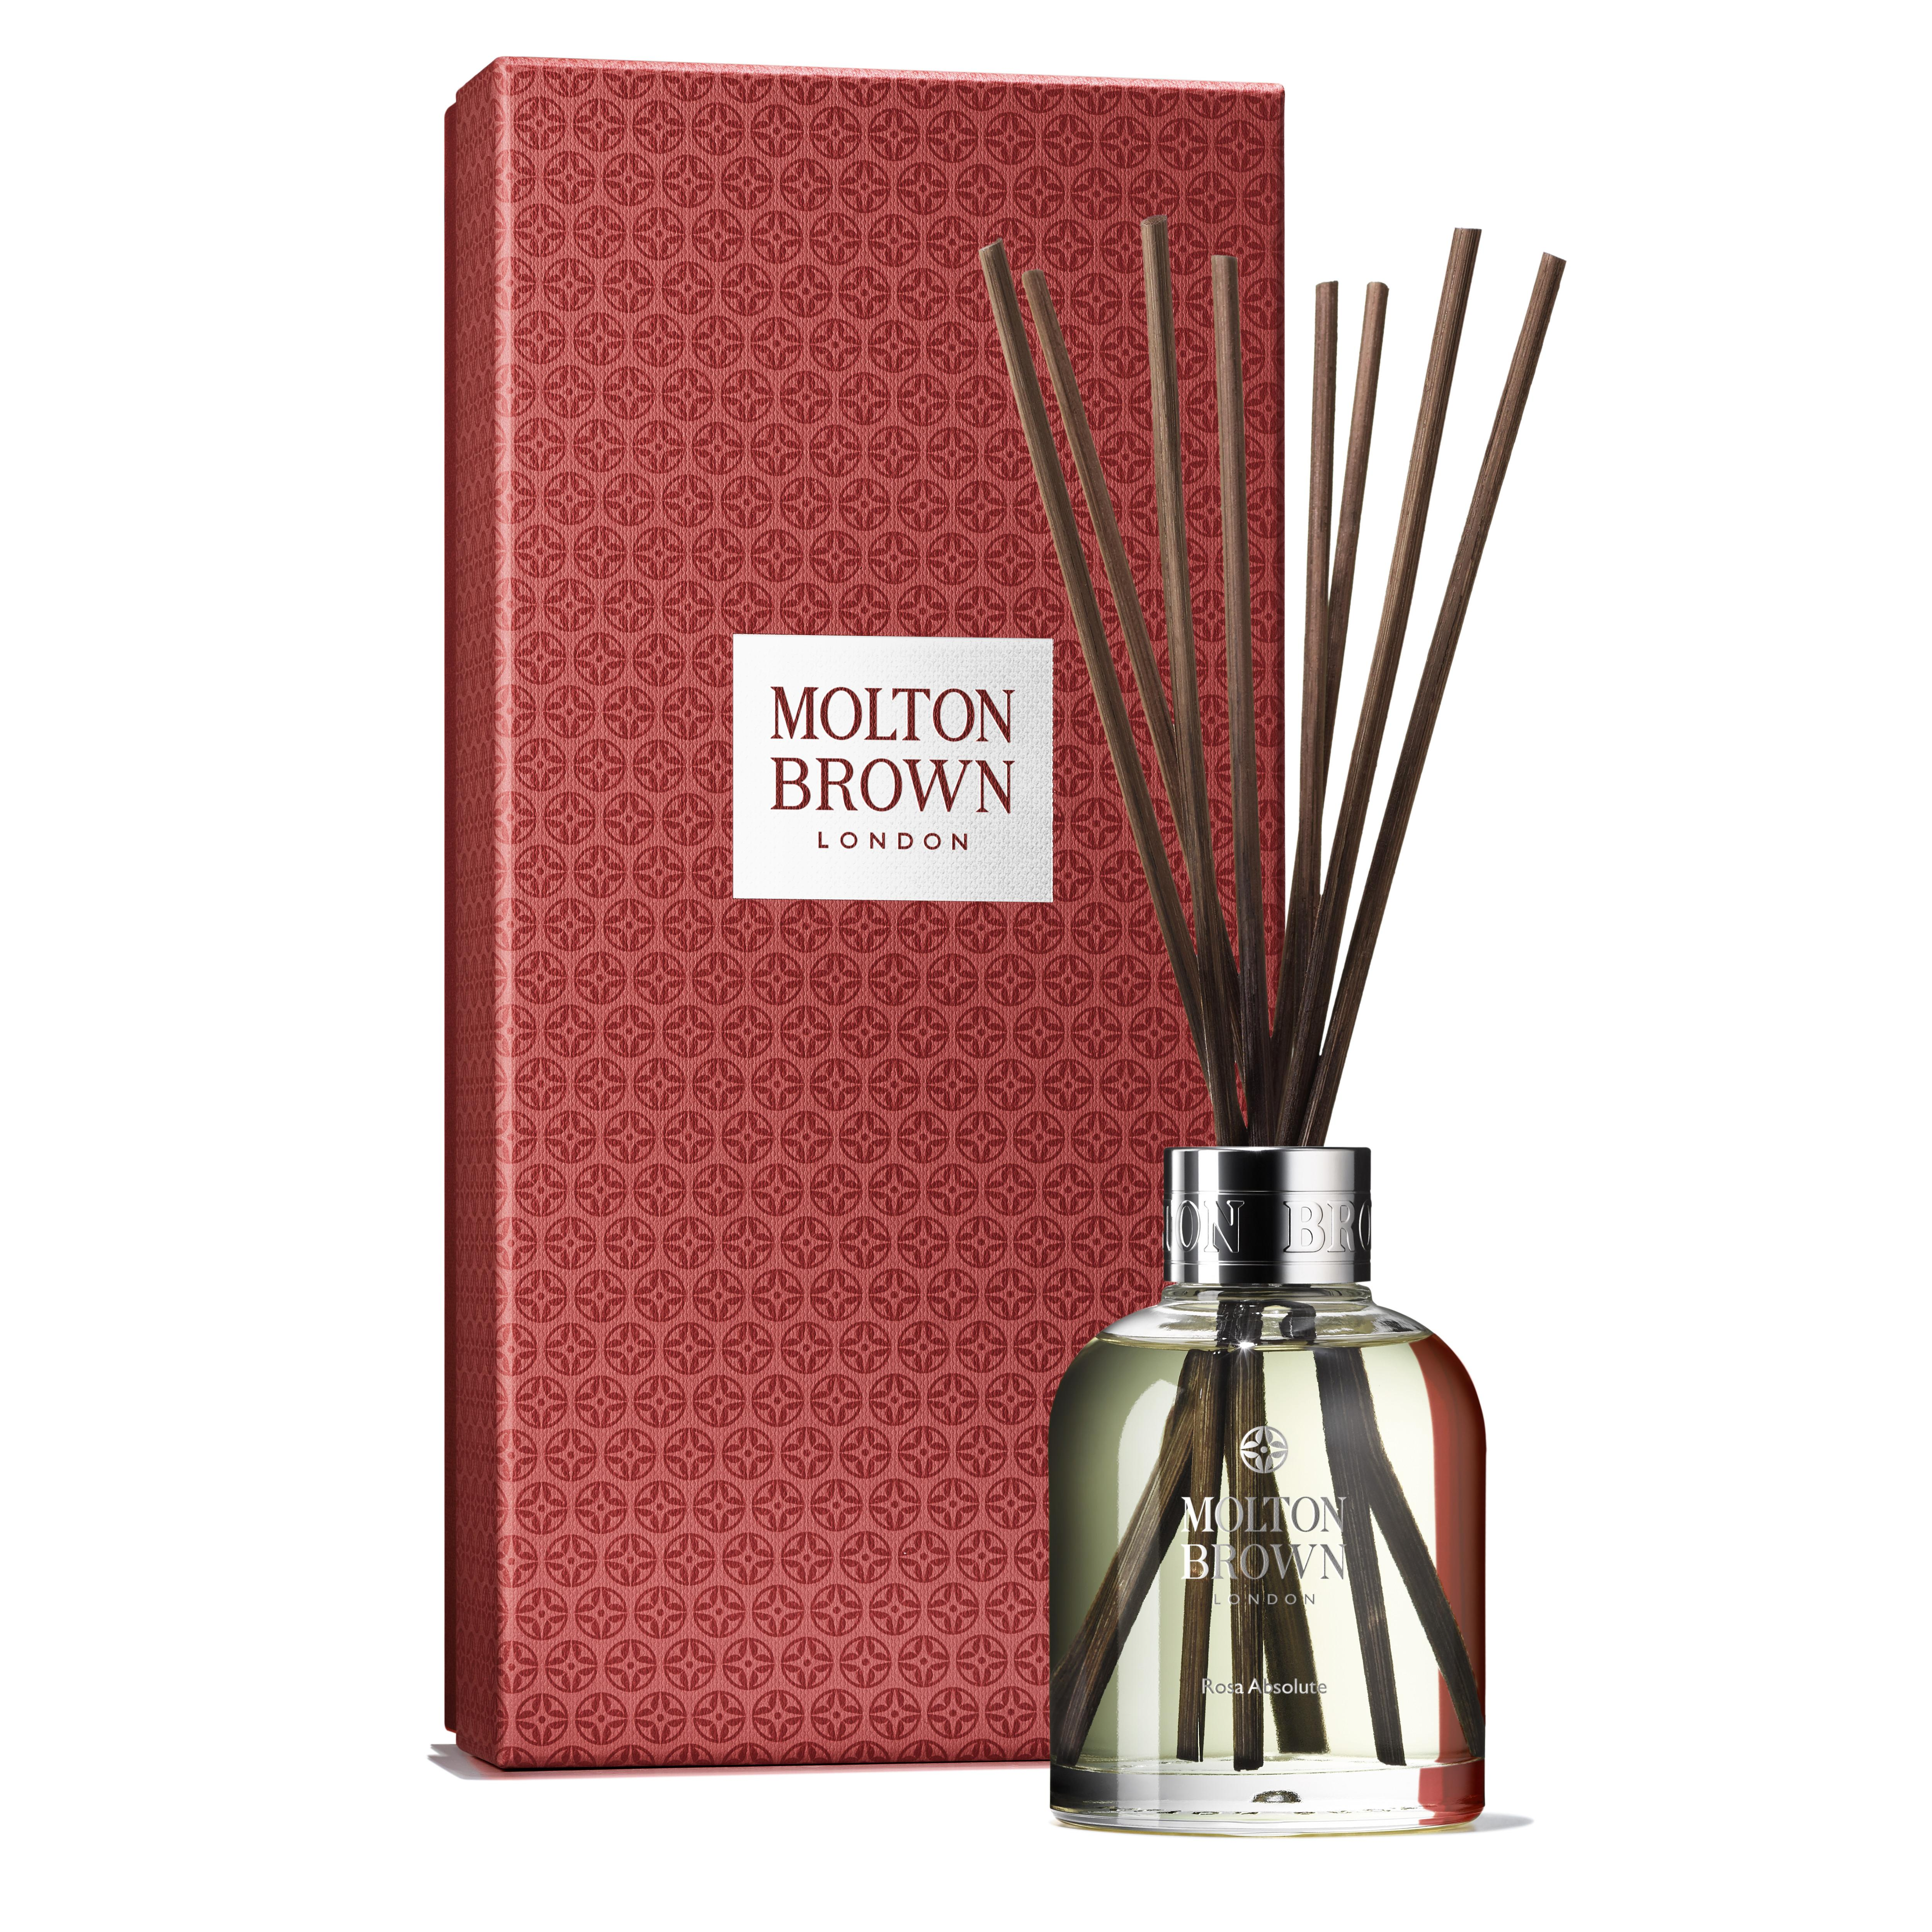 Düfte Für Zuhause Rosa Absolute Aroma Reed Diffuser Molton Brown